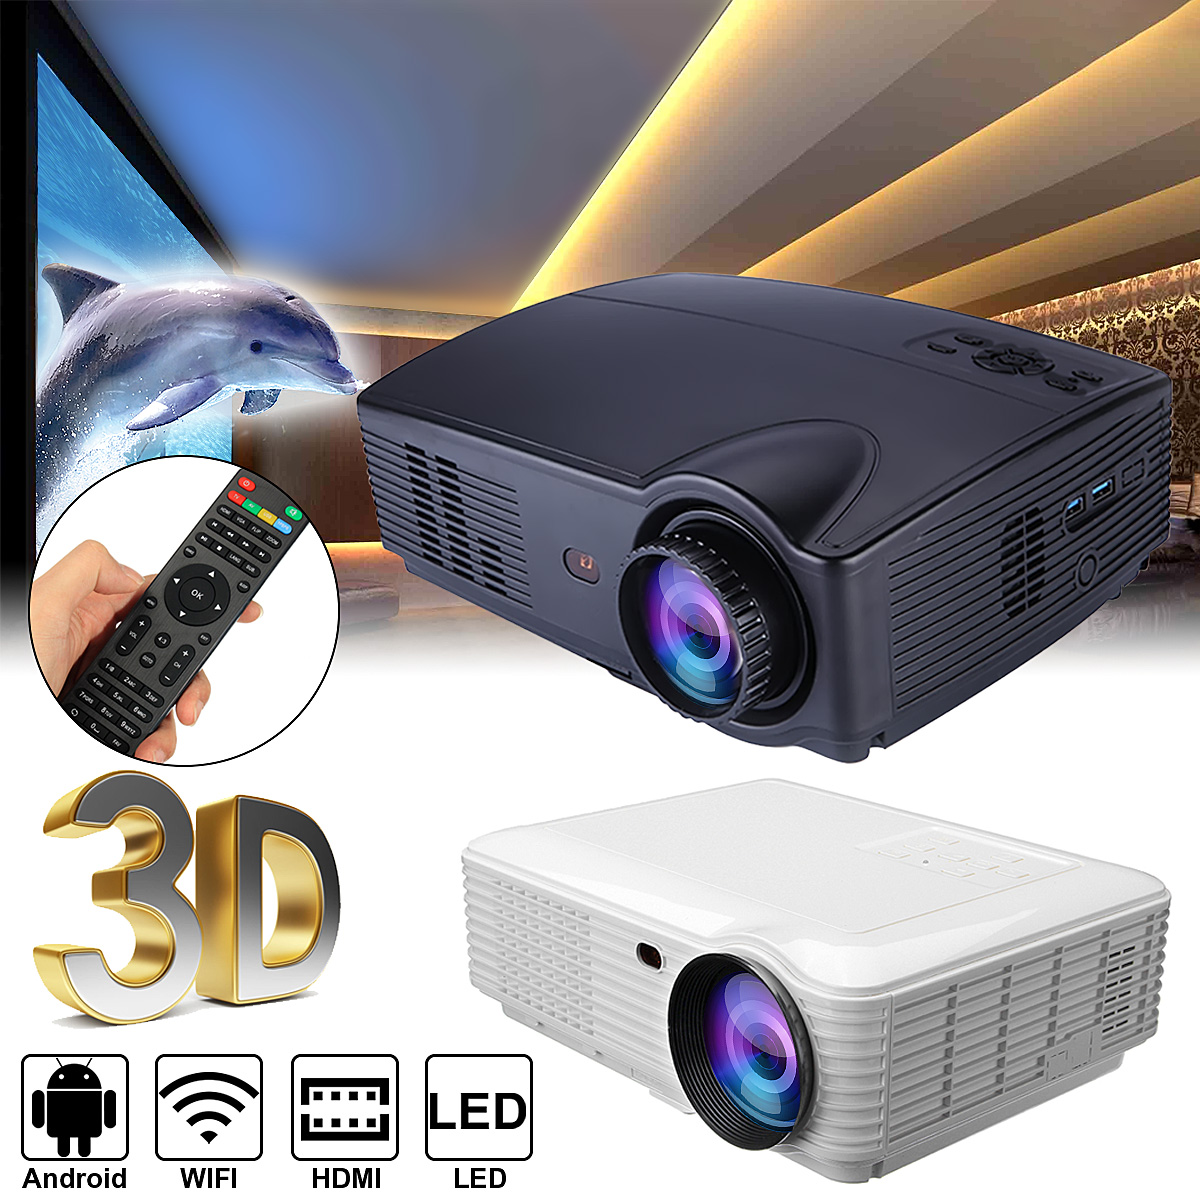 SV 328 WiFi version 4600 Lumens LCD Technology Smart Projector Digital Home Theater Projector Support audio / video TV